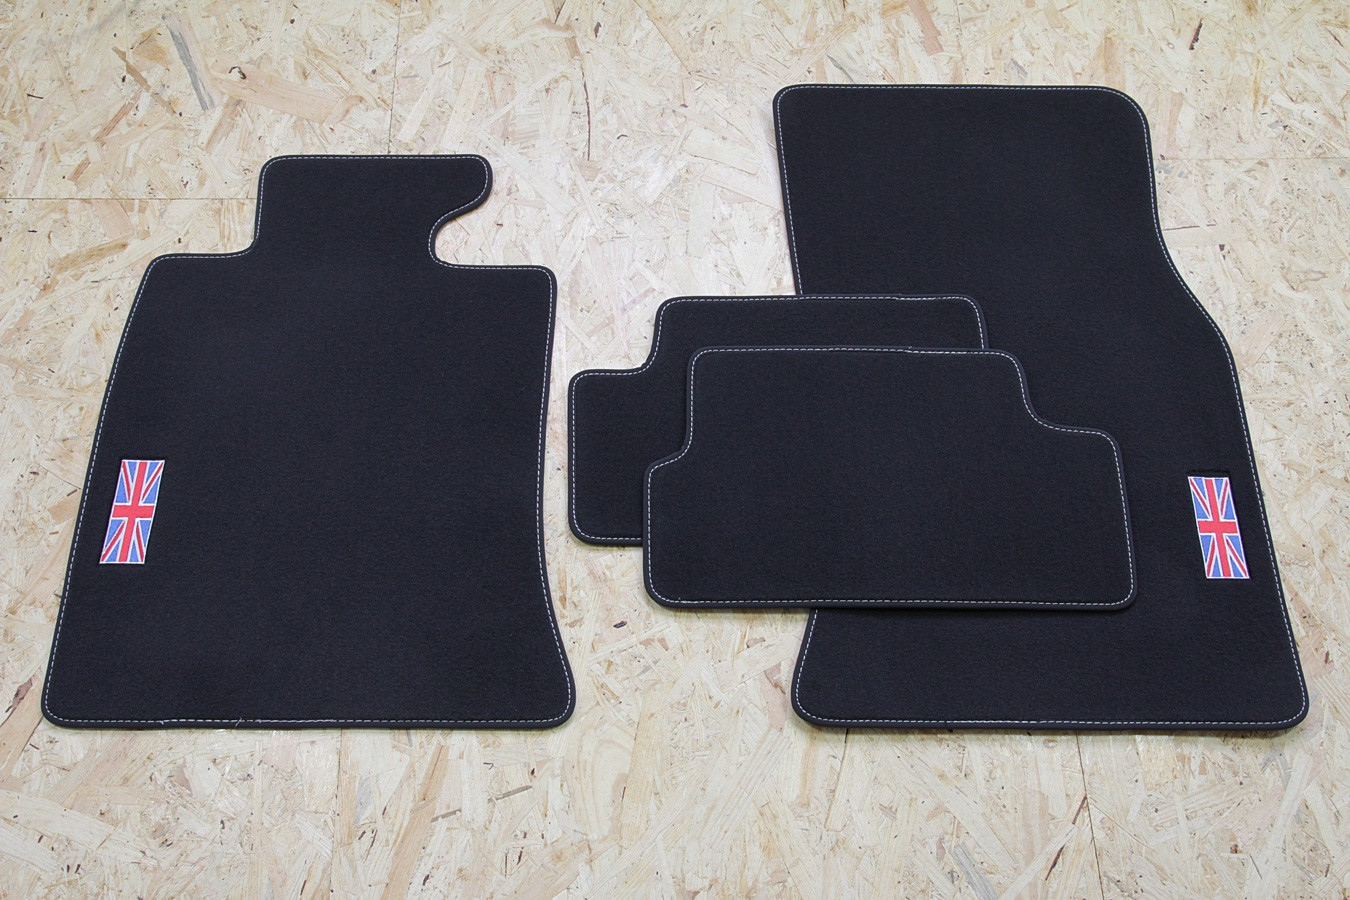 tapis de sol de voitures pour mini ii 2 r56 annee 2006. Black Bedroom Furniture Sets. Home Design Ideas